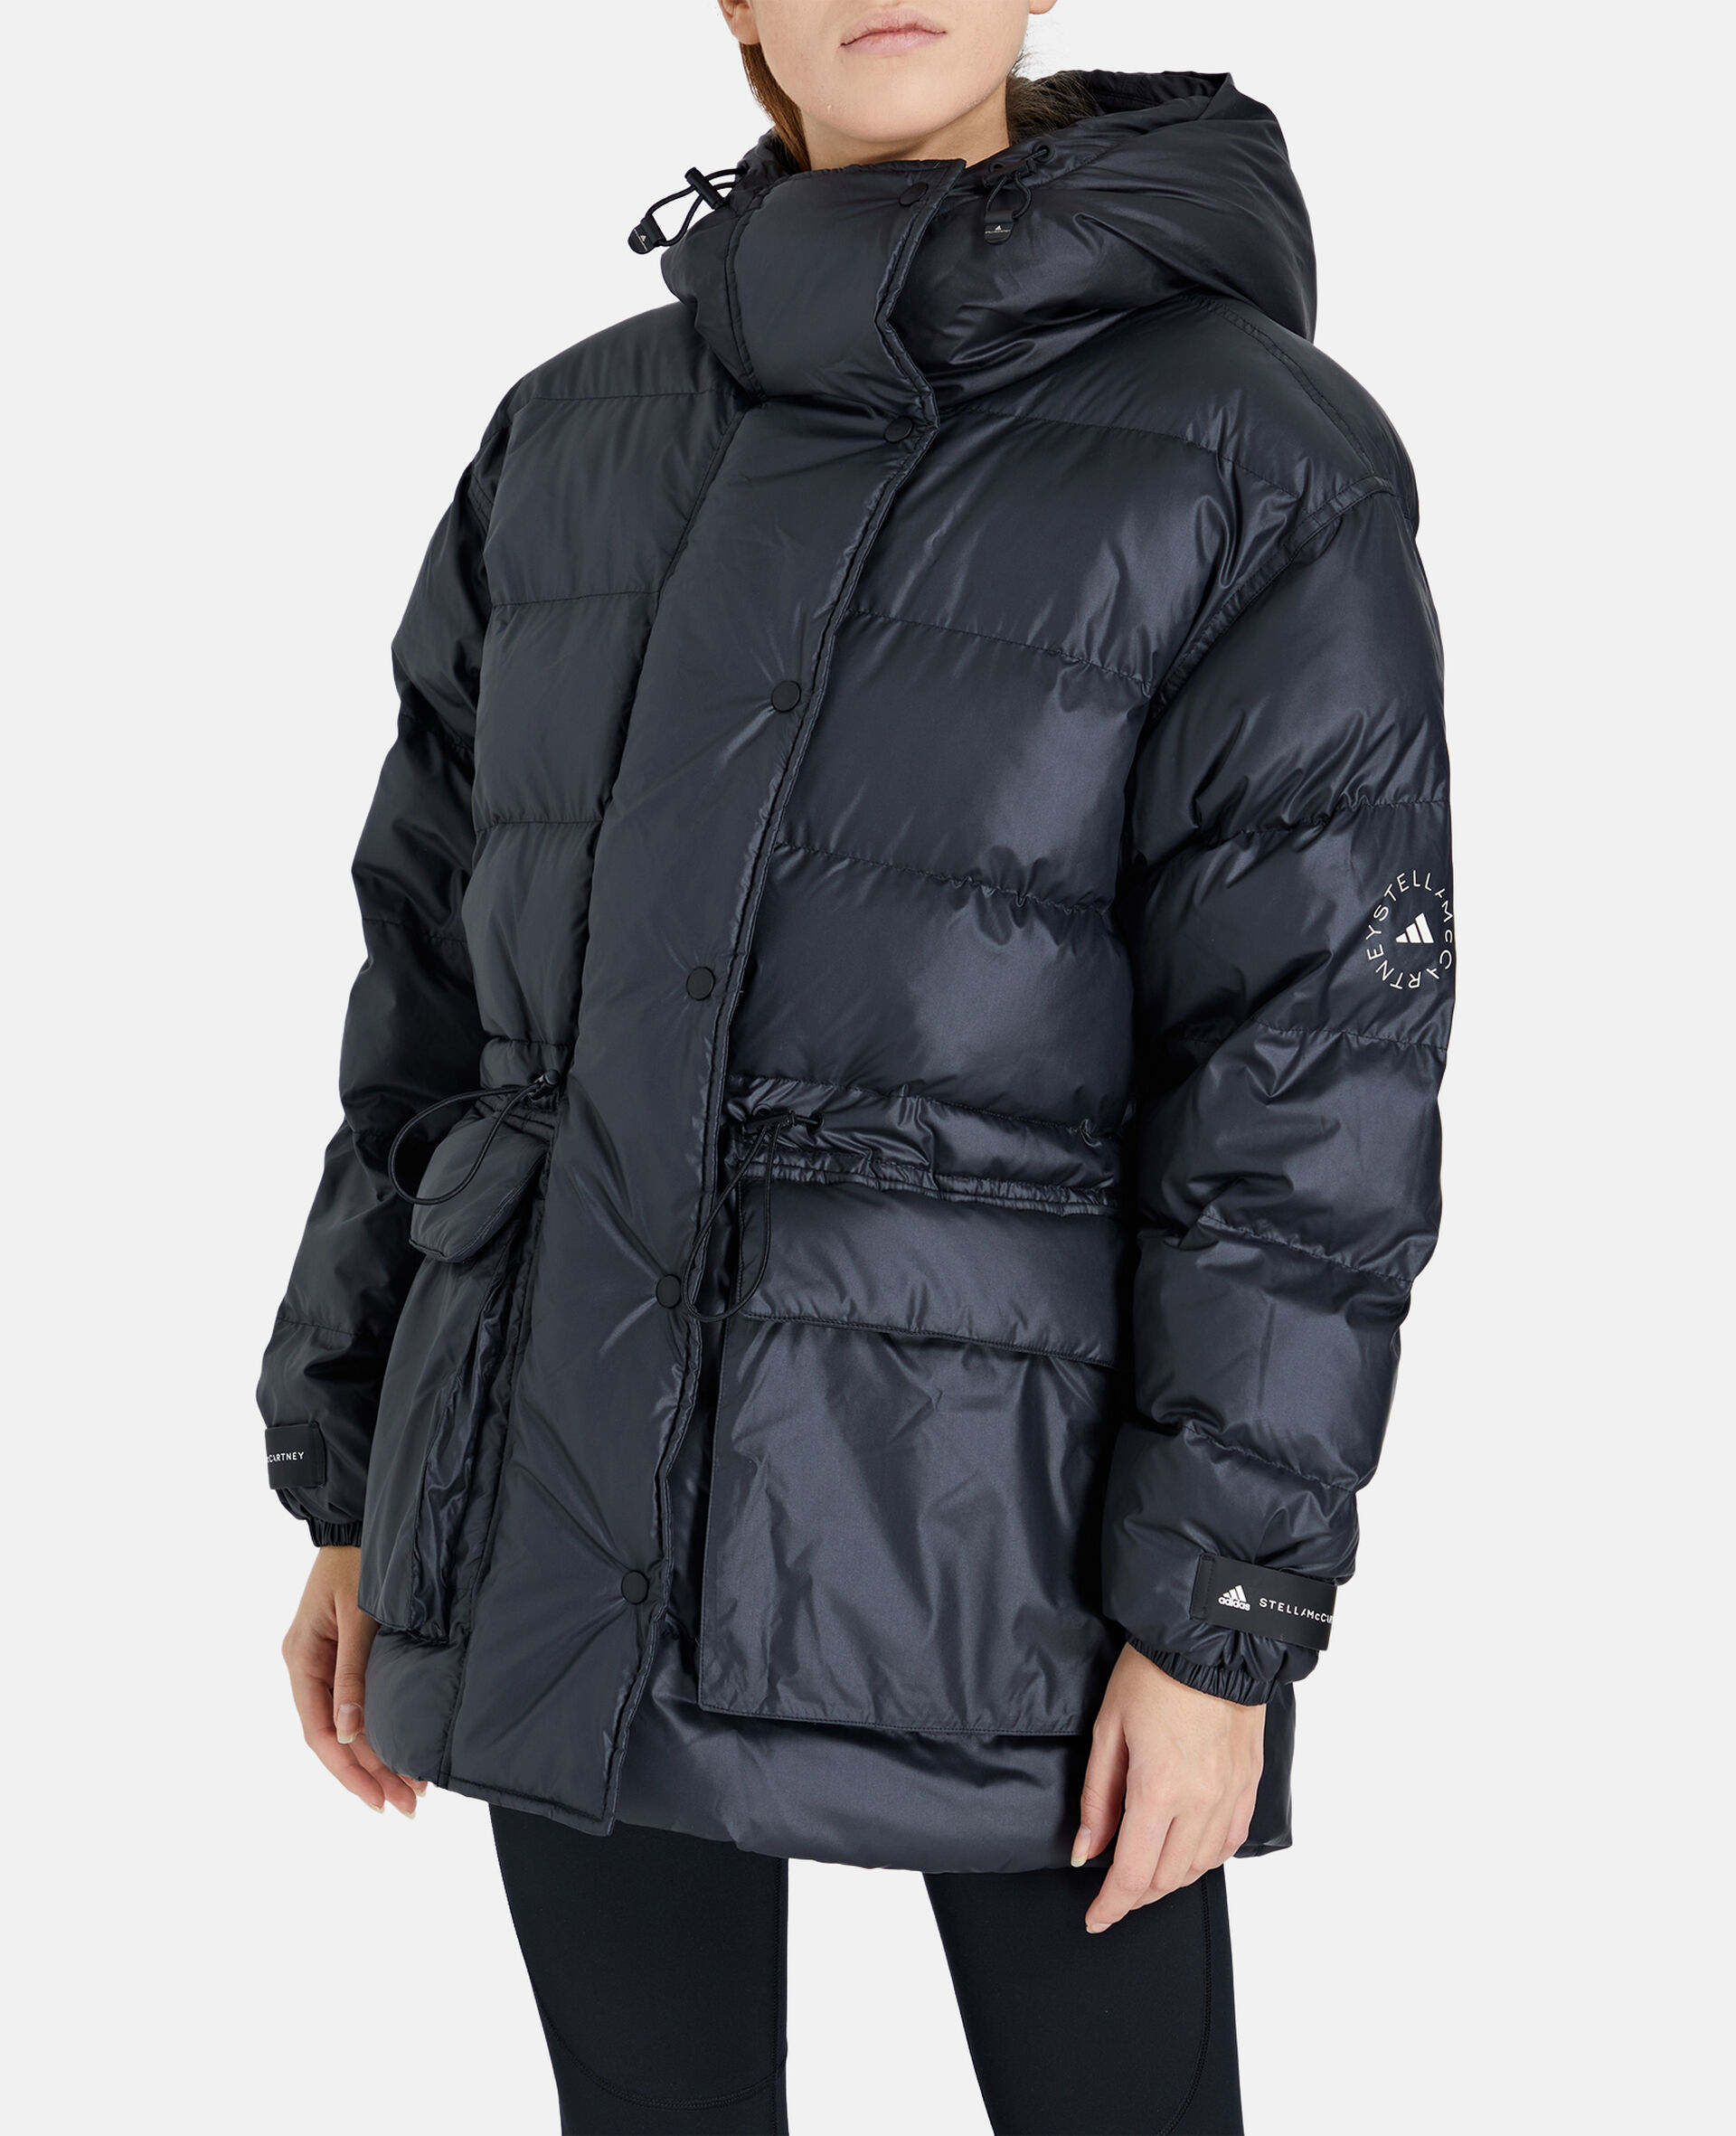 2-in-1 Mid-Length Padded Jacket-Black-large image number 4